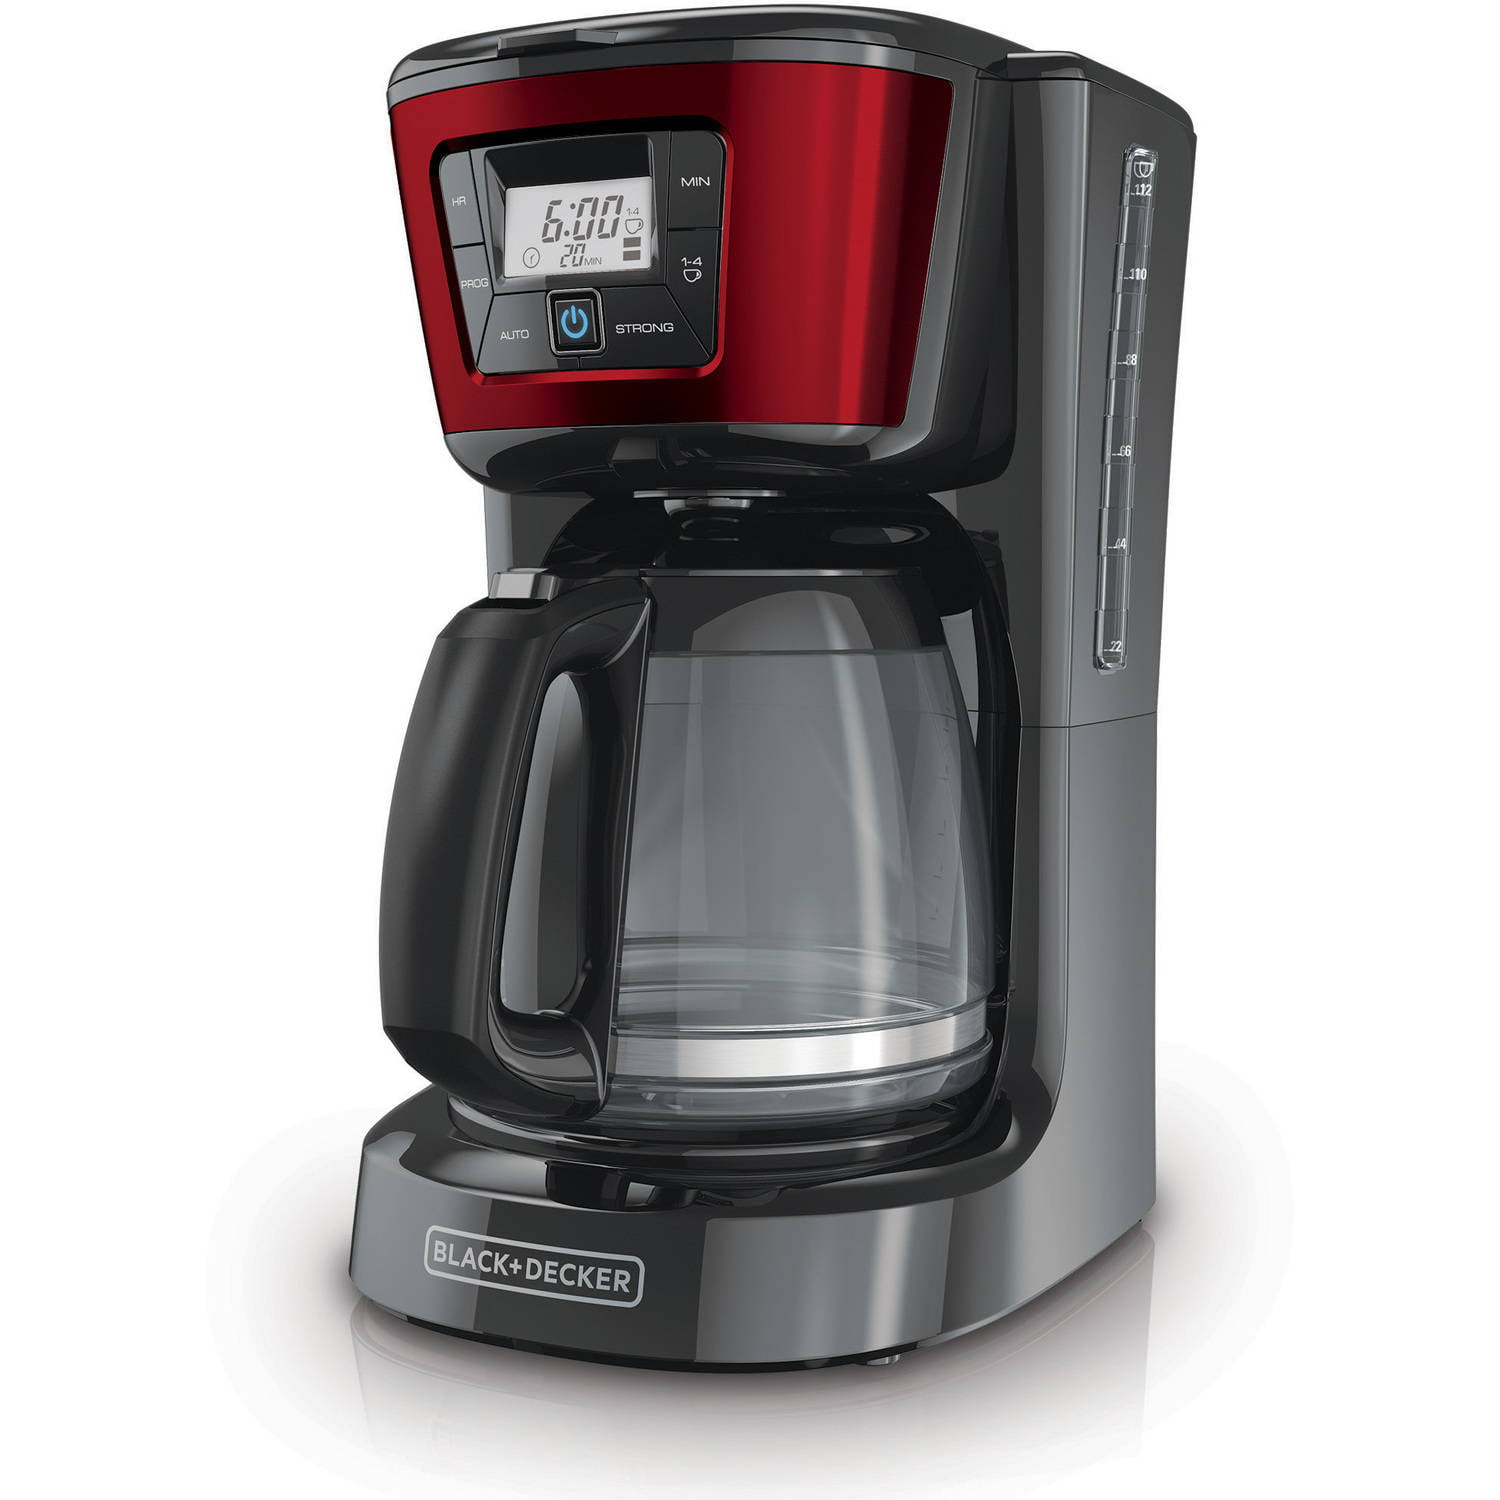 Black And Decker Gt300 Coffee Maker : TOP QUALITY Black and Decker 12-Cup Programmable Coffee Maker Thermal Carafe eBay